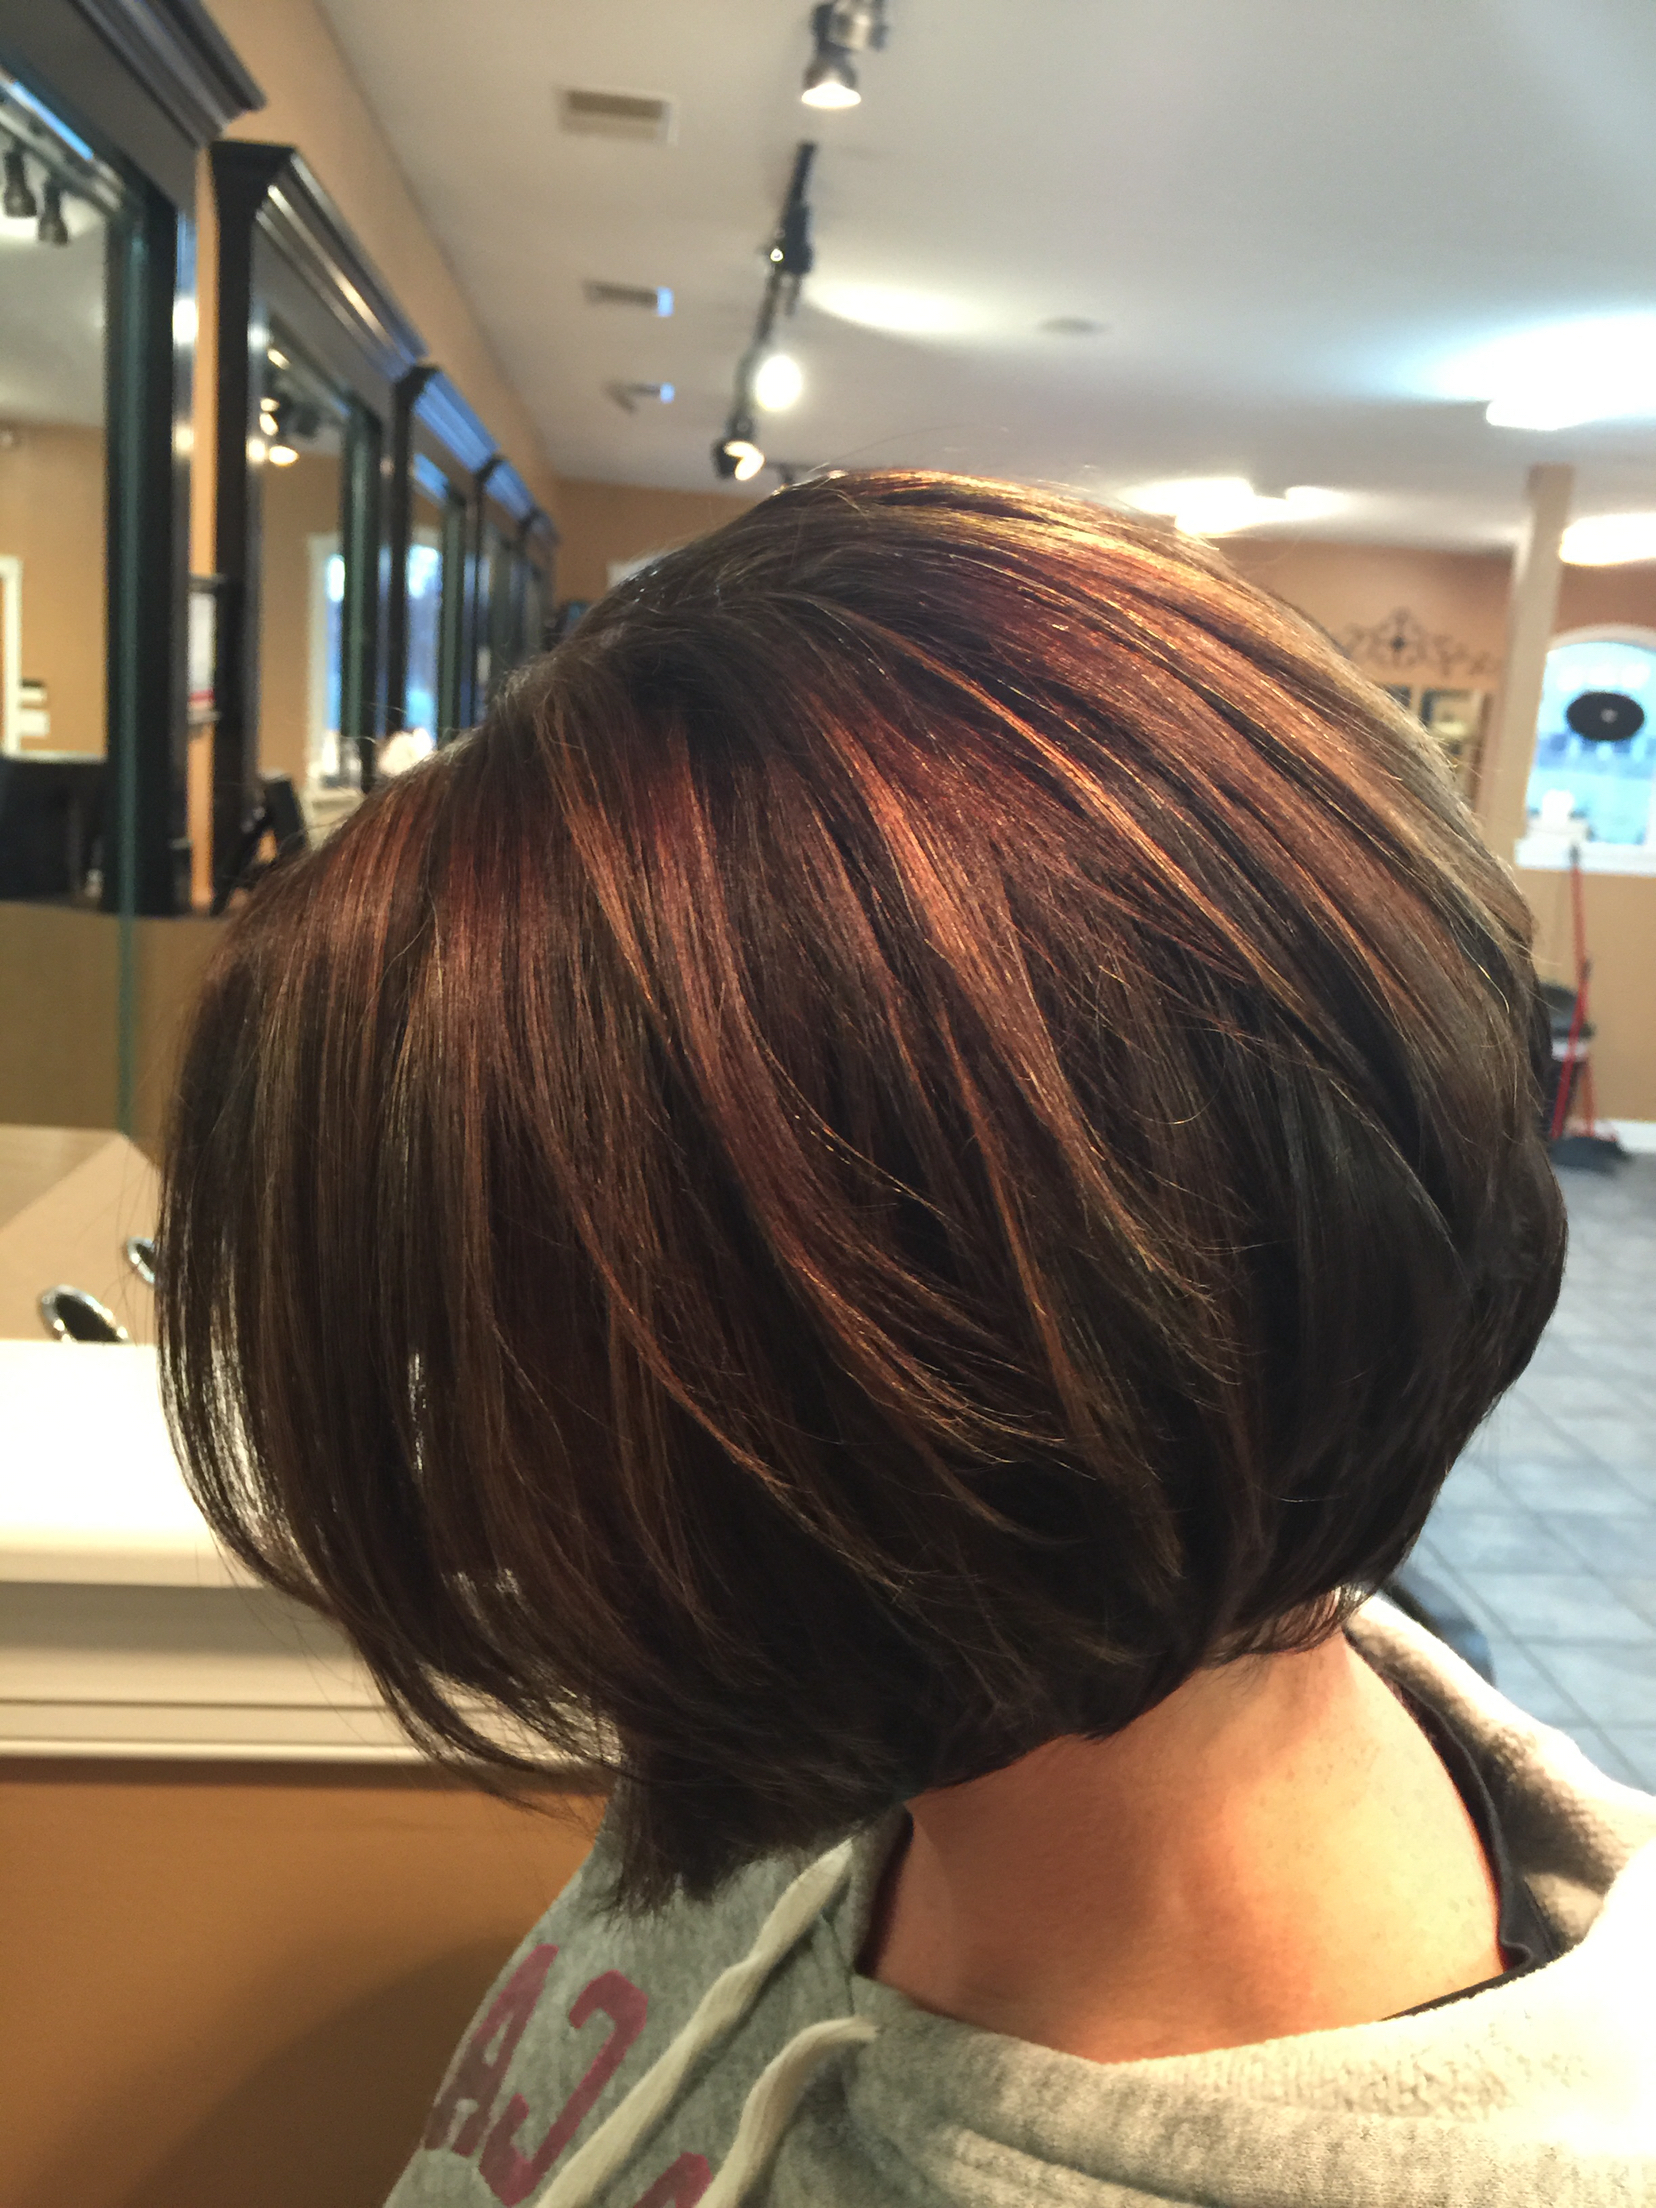 Captivating Caramel Bob Hairstyles On Inverted Bob Chocolate Brown Within Stacked Bob Hairstyles With Highlights (View 7 of 20)